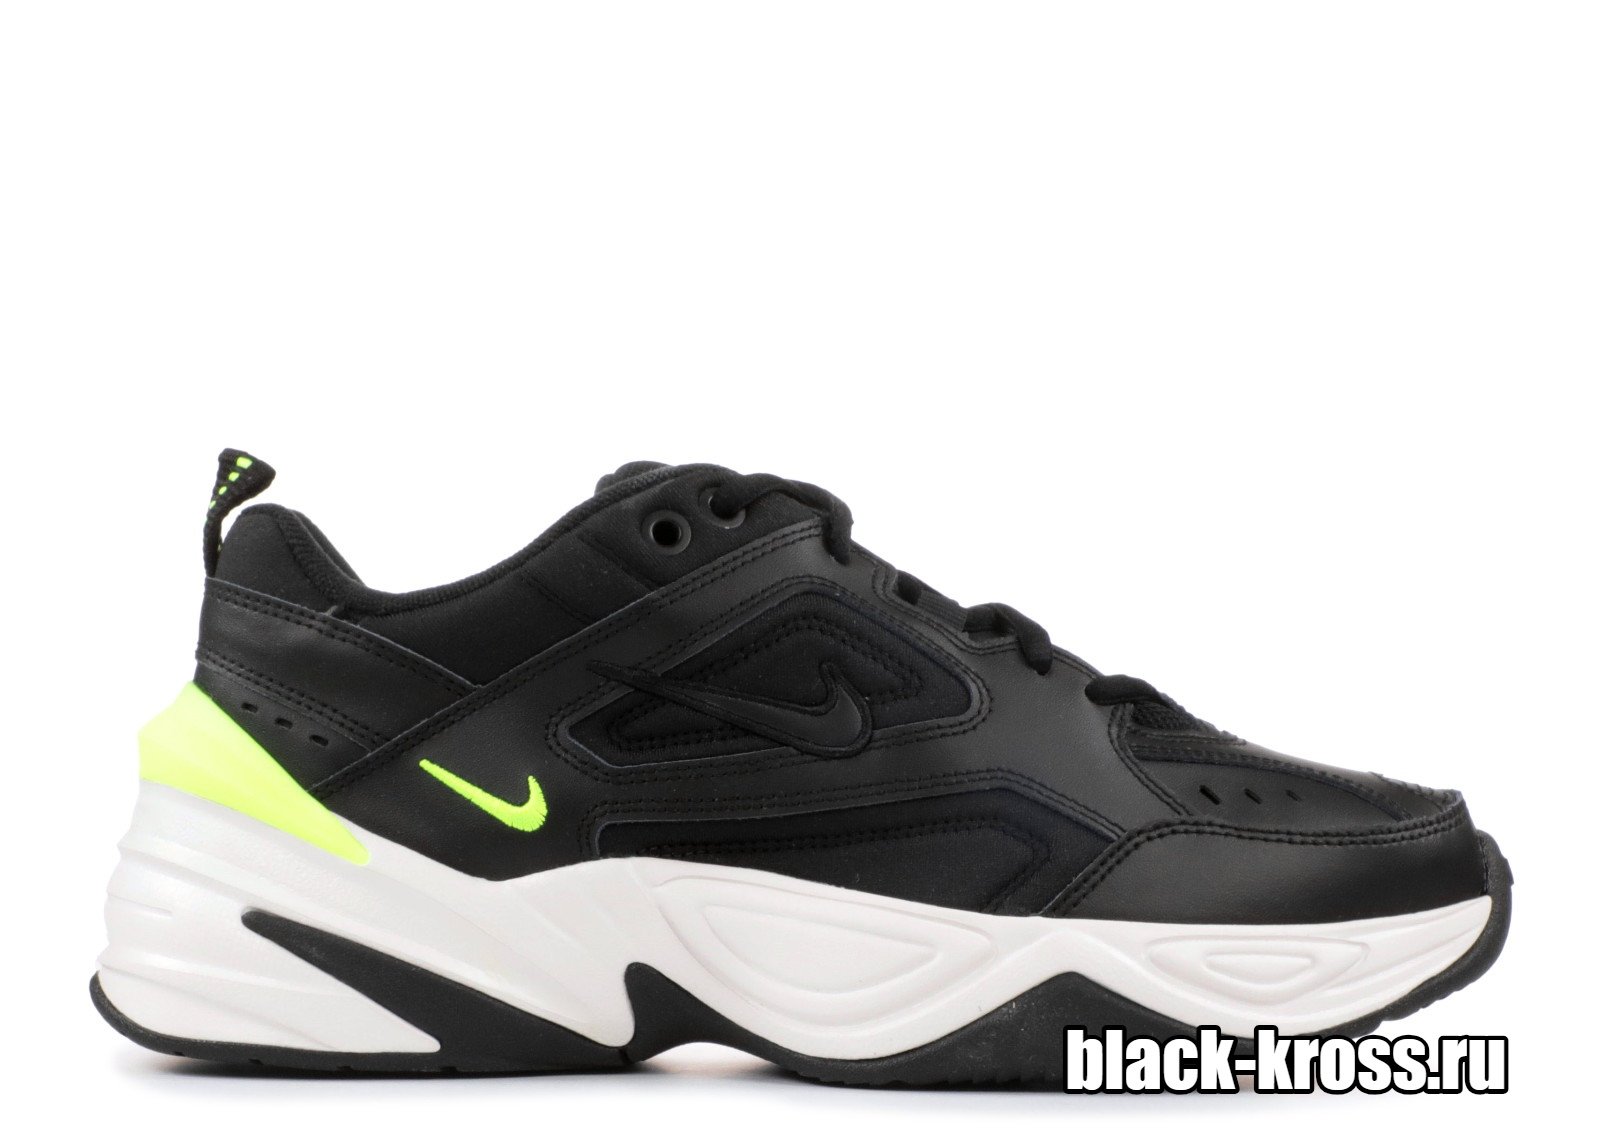 NIKE M2K TEKNO Black & Yellow унисекс (36-45)